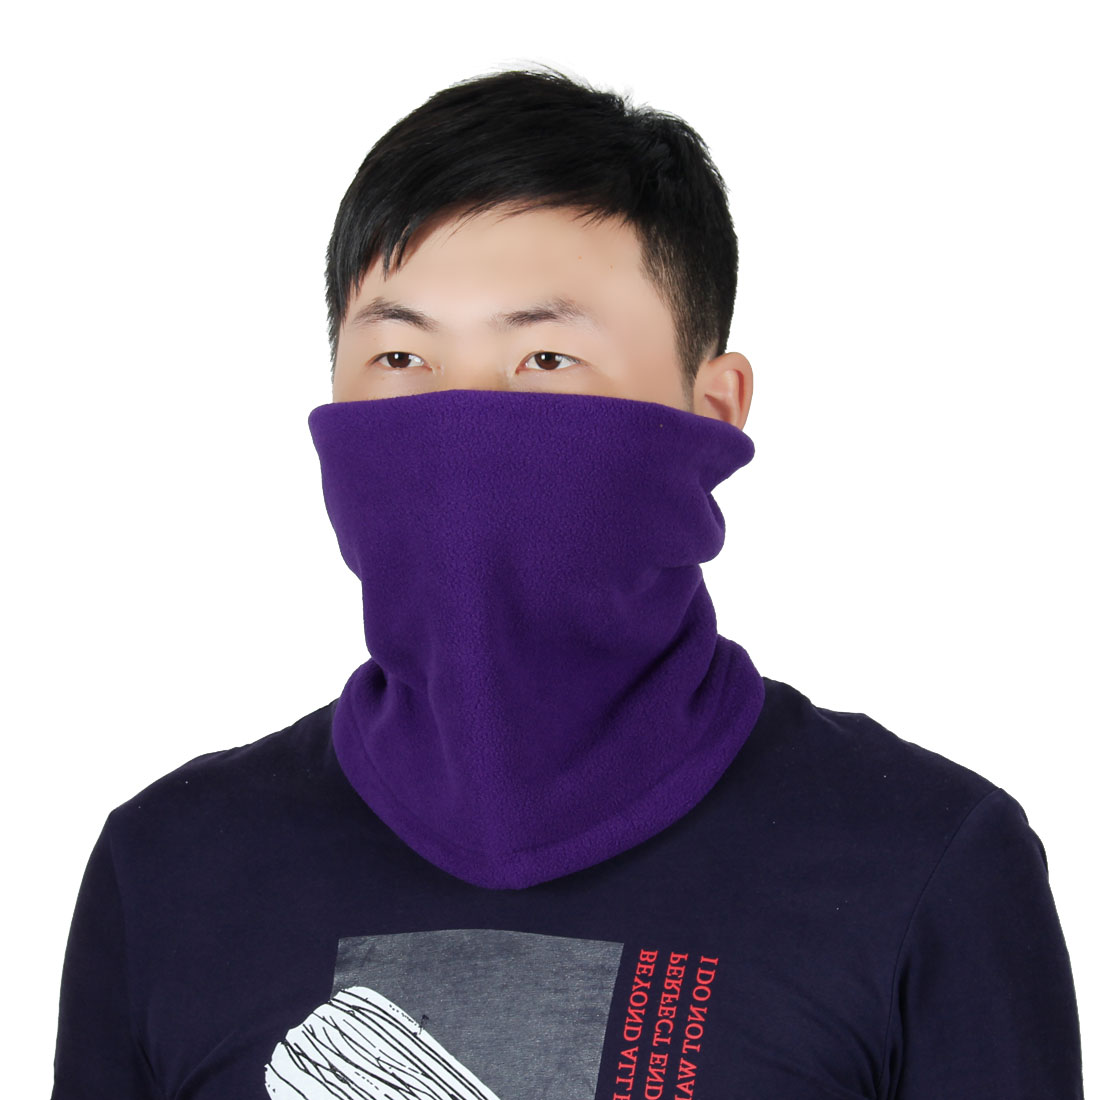 Adjustable Face Mask Winter Neck Tube Protector Outdoor Cycling Scarf Purple by Unique-Bargains